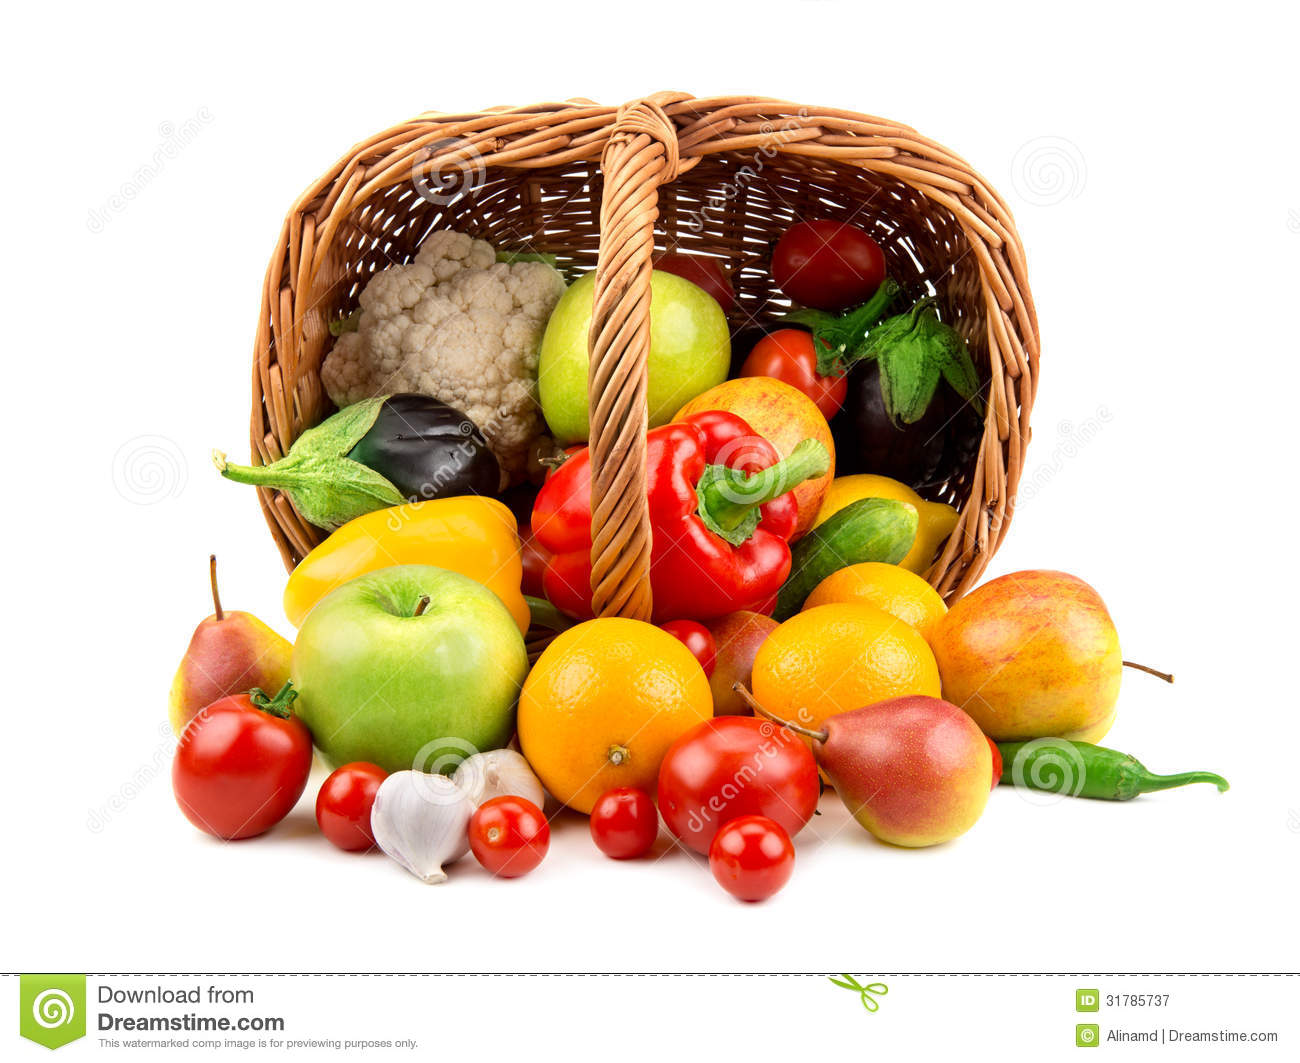 Fruits And Vegetables In A Basket Royalty Free Stock Photography - Image: 31785737